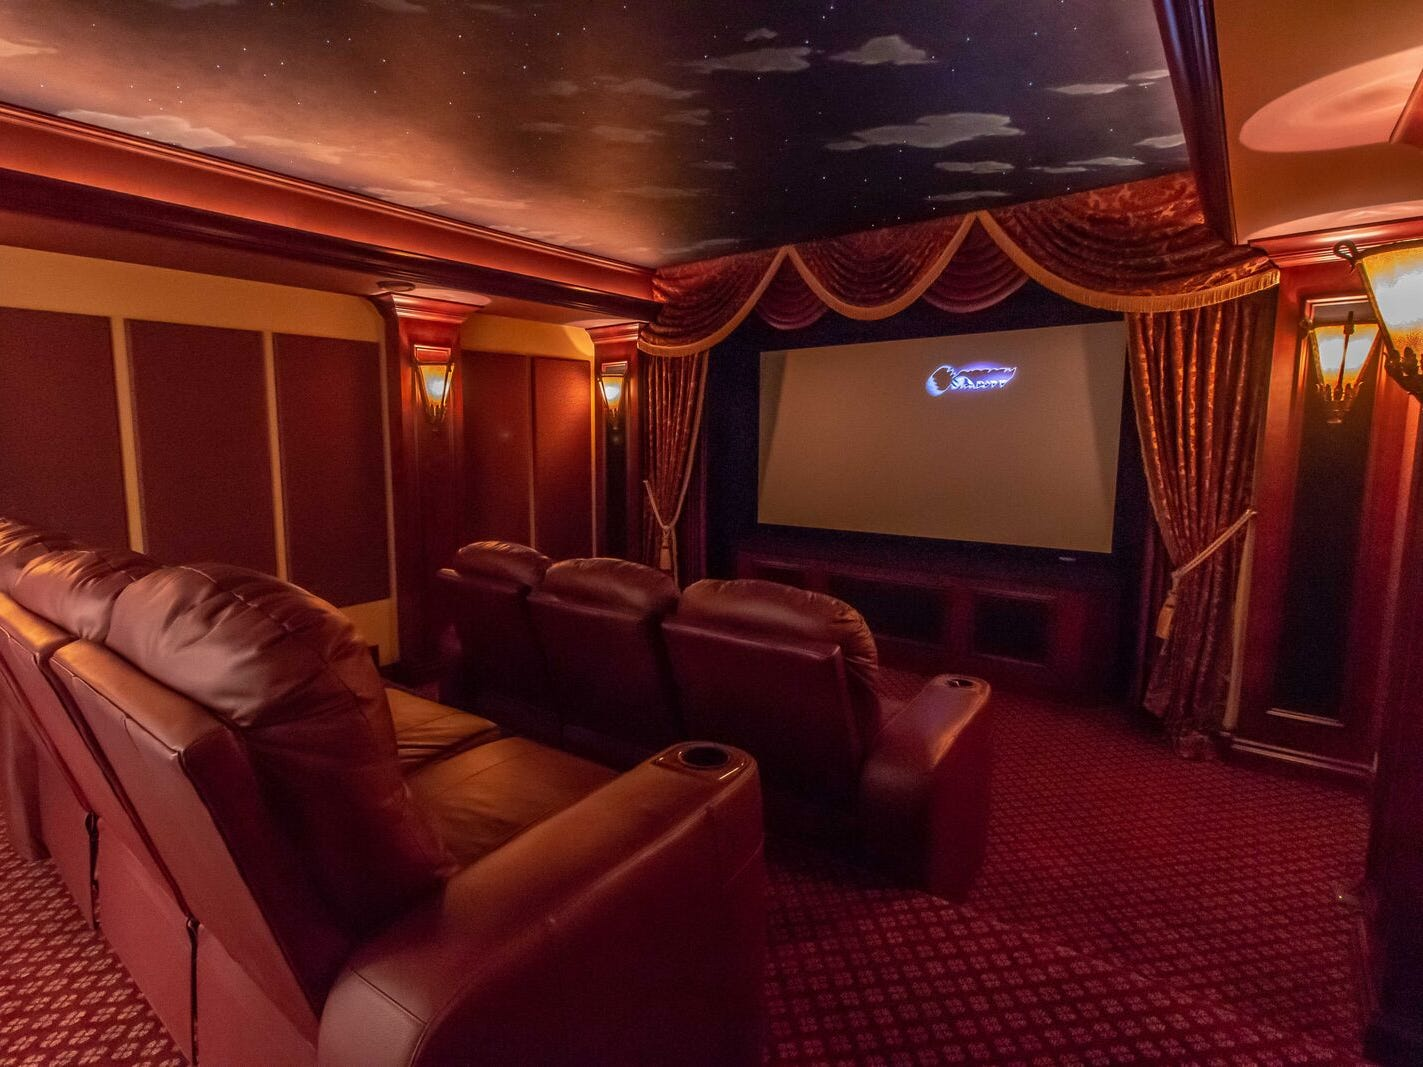 The home also features a theater.